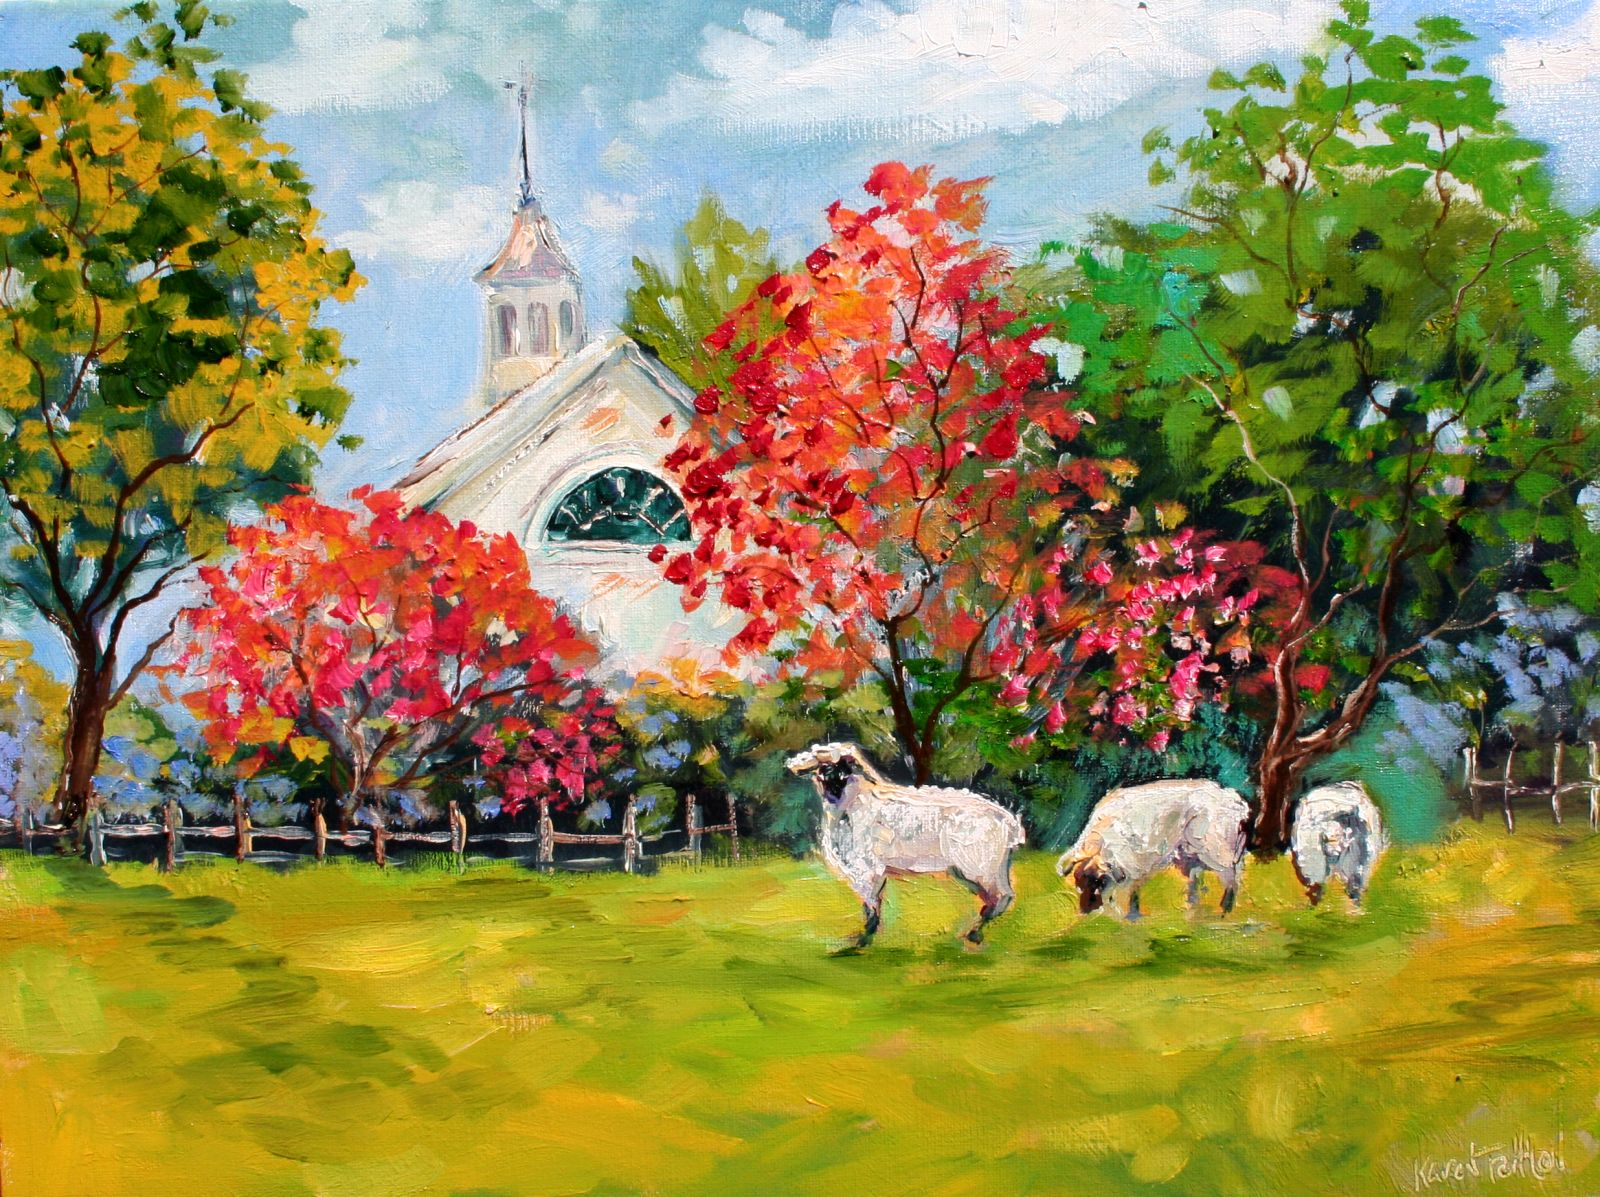 Karen Tarlton - Page 3 Tarlton+Original+Oil+painting++Cottswolds+England++Sheep+art+eBay+022i